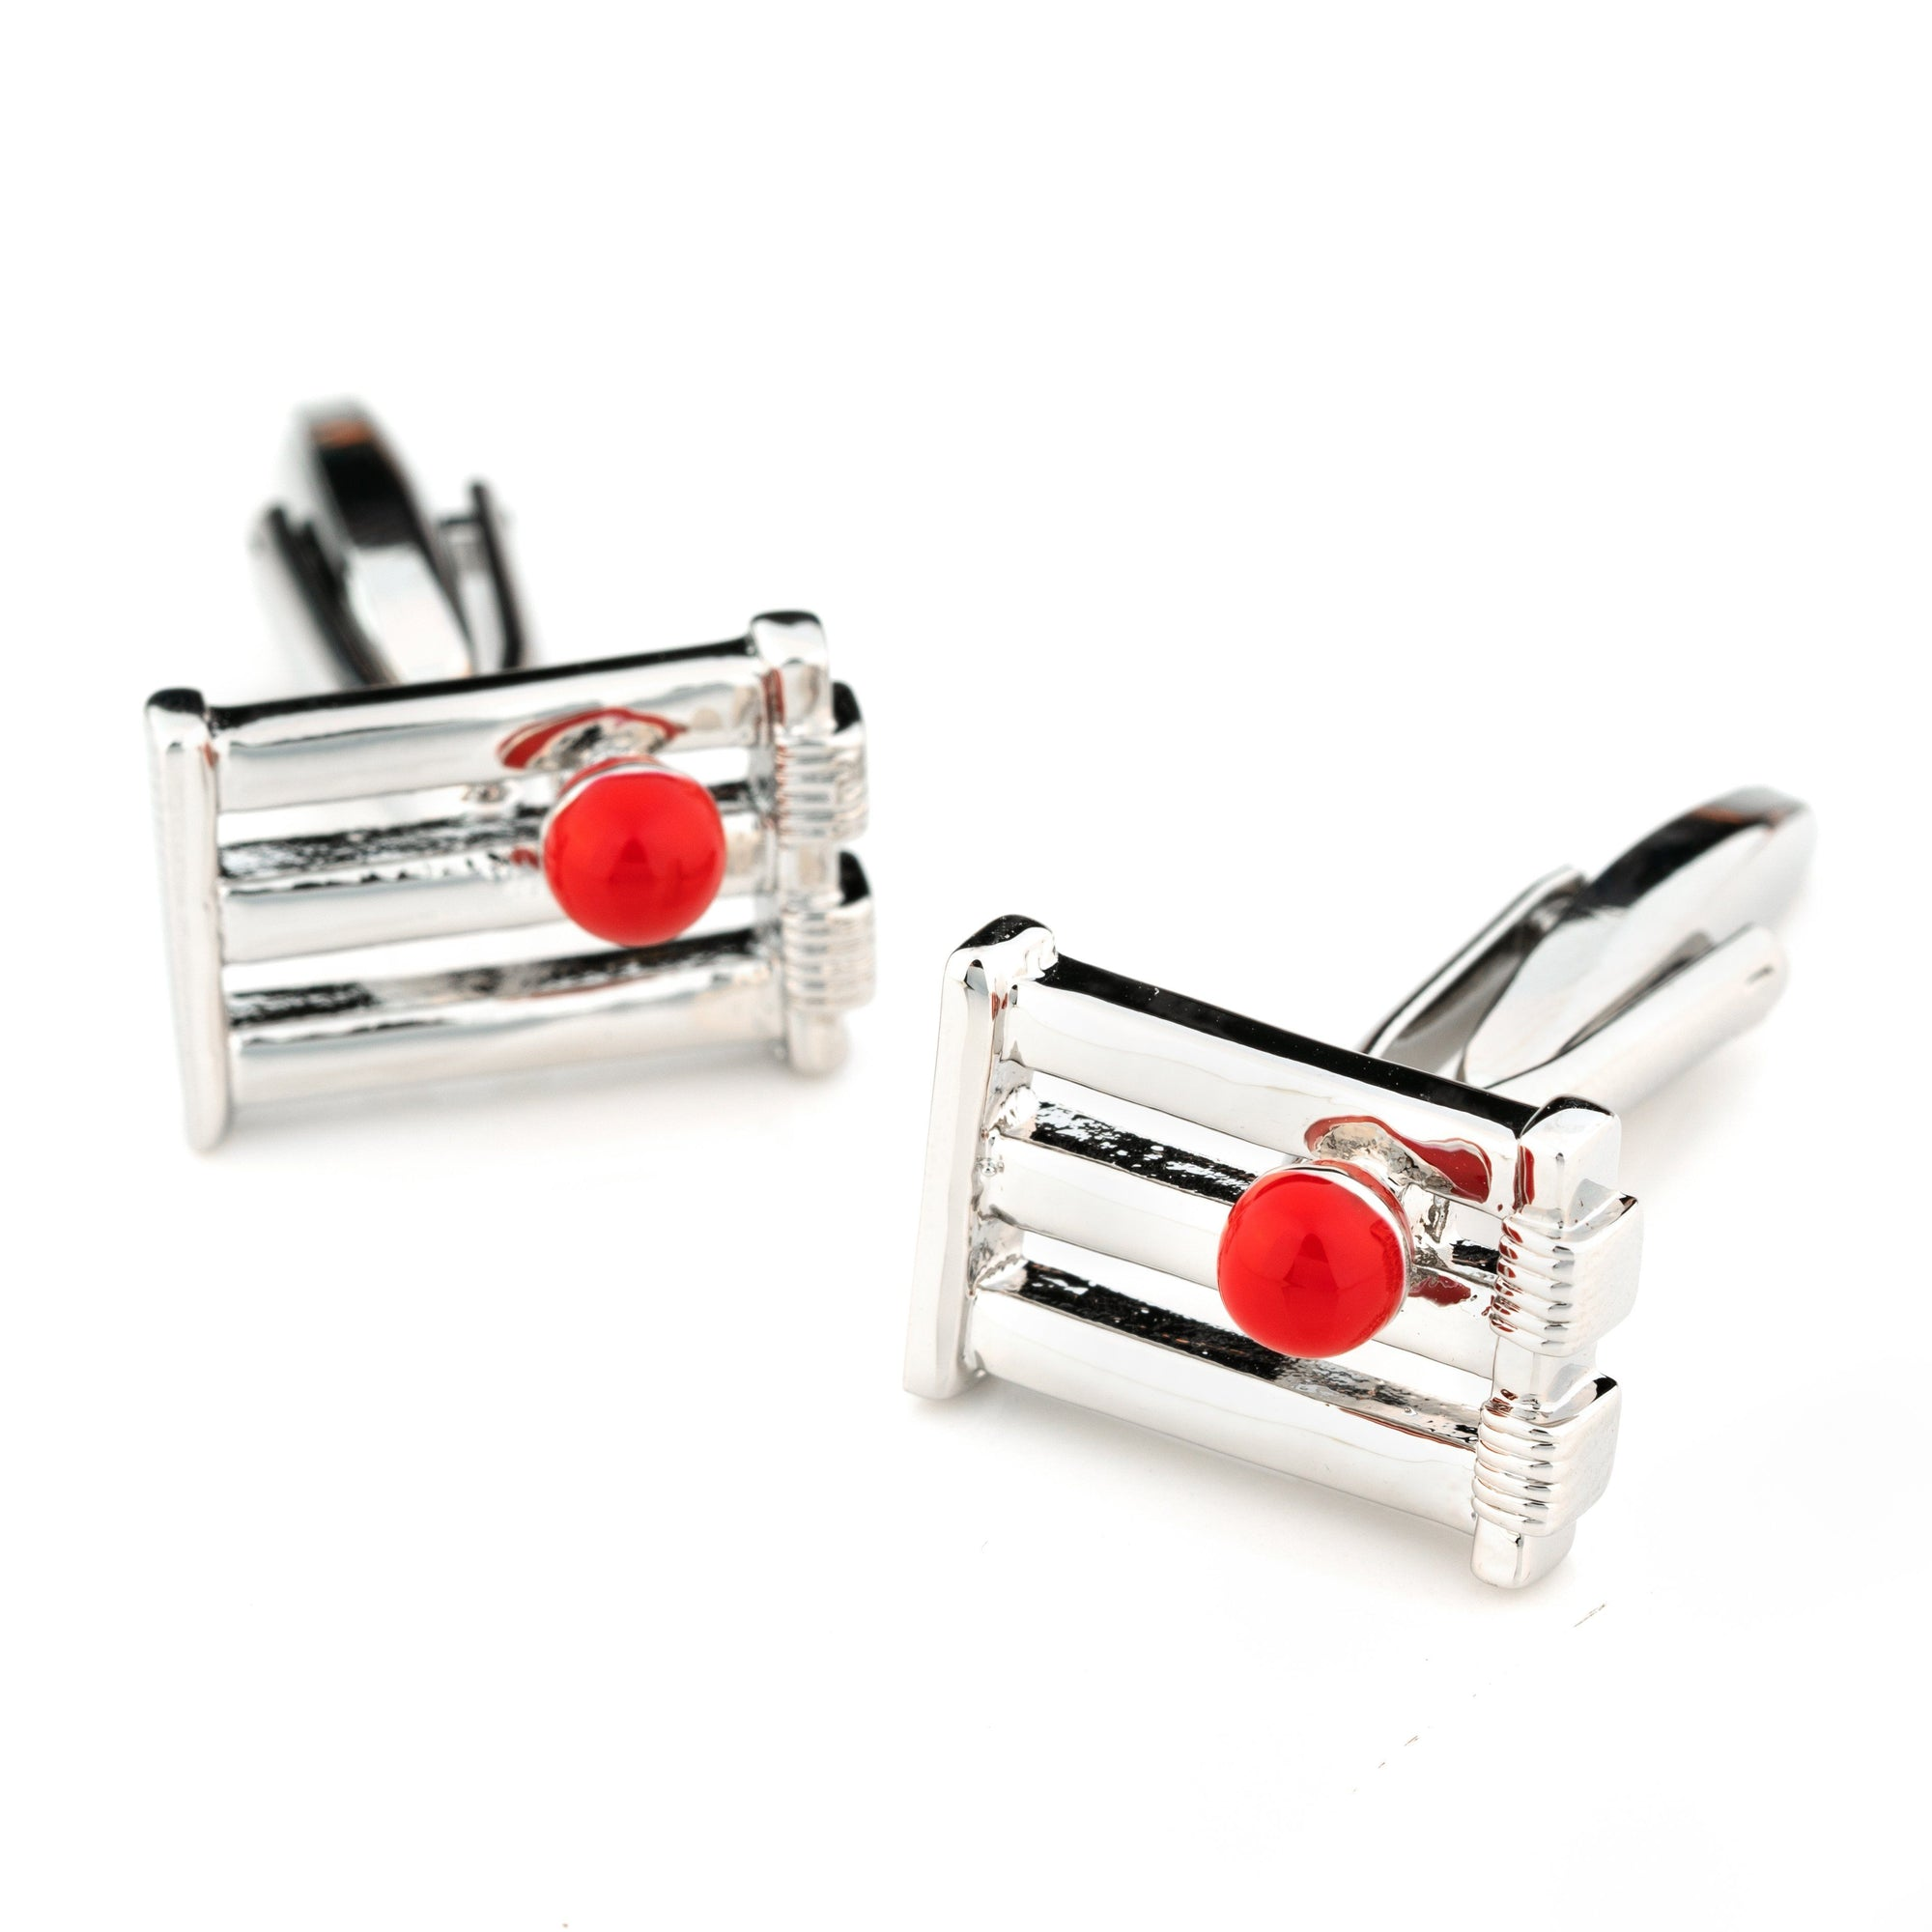 Cricket Wicket and Red Ball Cufflinks, Novelty Cufflinks, Cuffed.com.au, CL4023, Sports, Clinks Australia